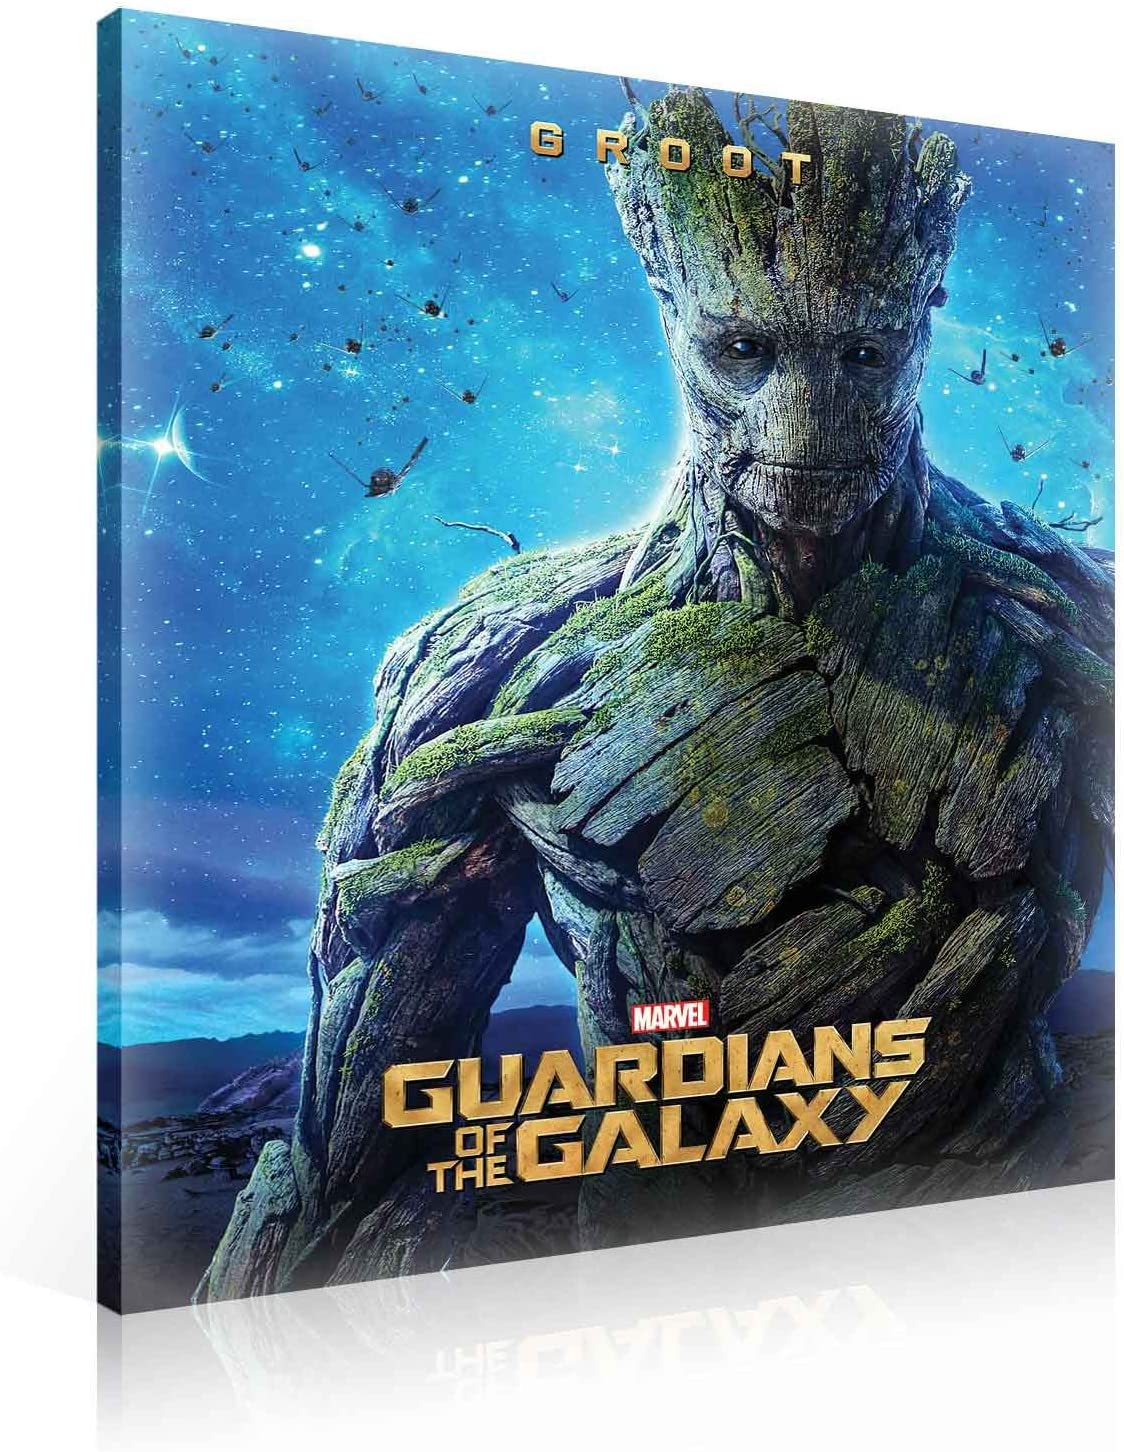 GUARDIANI GROOT E ROCKET MARVEL QUADRO 160x90 STAMPA SU TELA CANVAS NO TELAIO